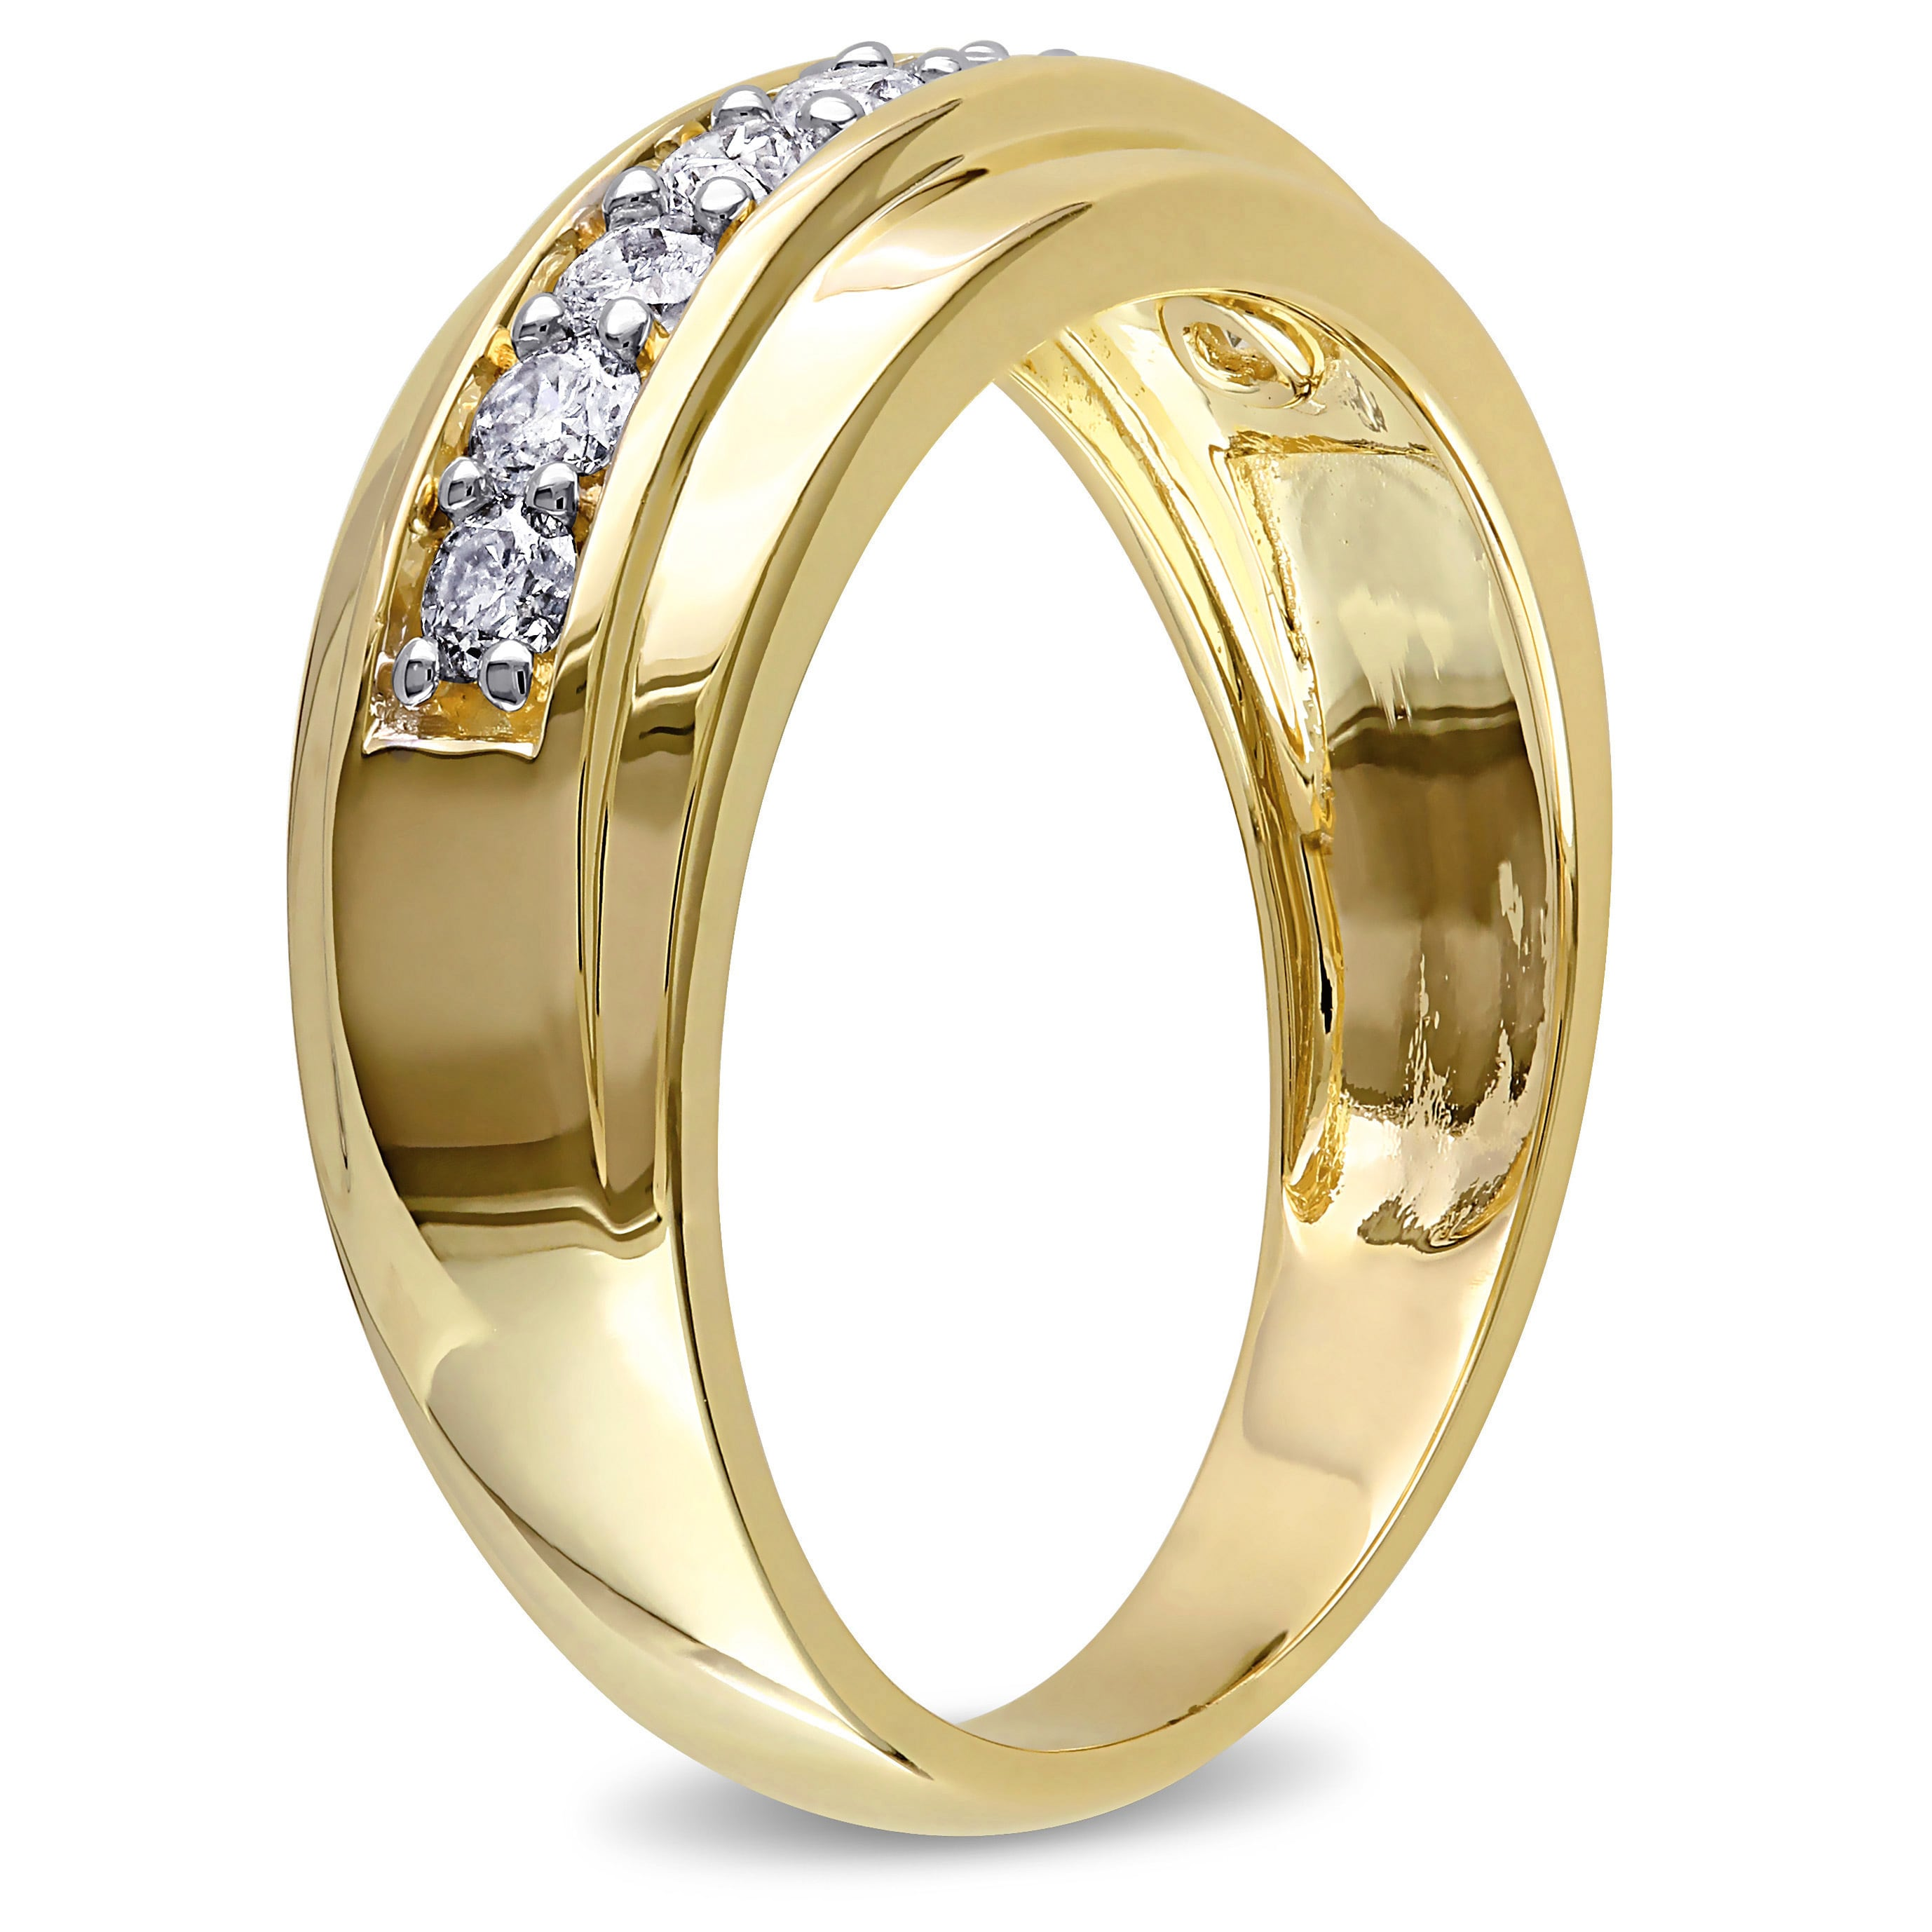 man mens bauer wedding borderline gold traditional jsessionid w b rings jewelers christian ring singer steven